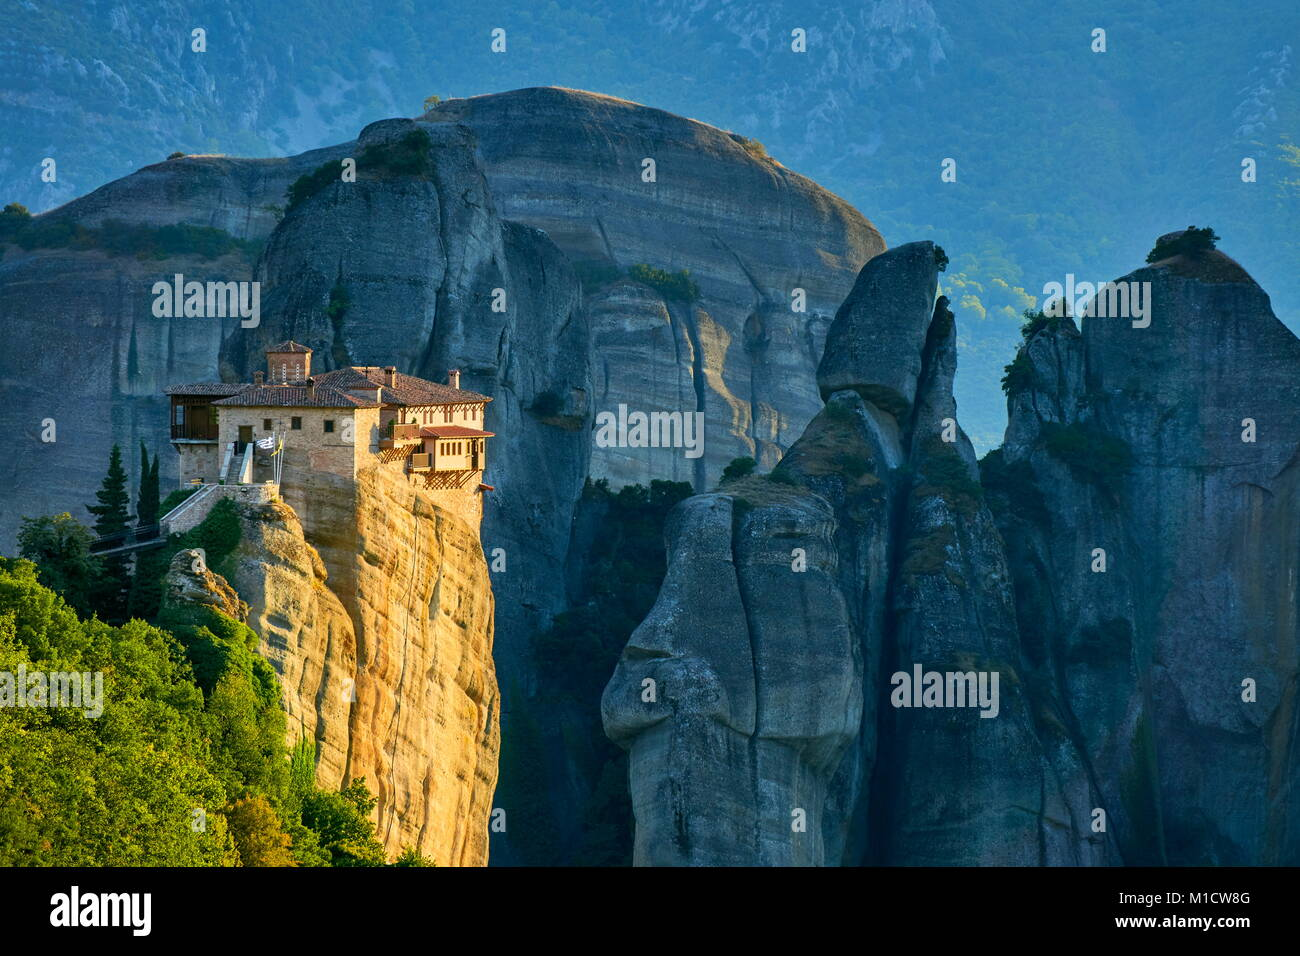 Monastery at Meteora, Greece - Stock Image